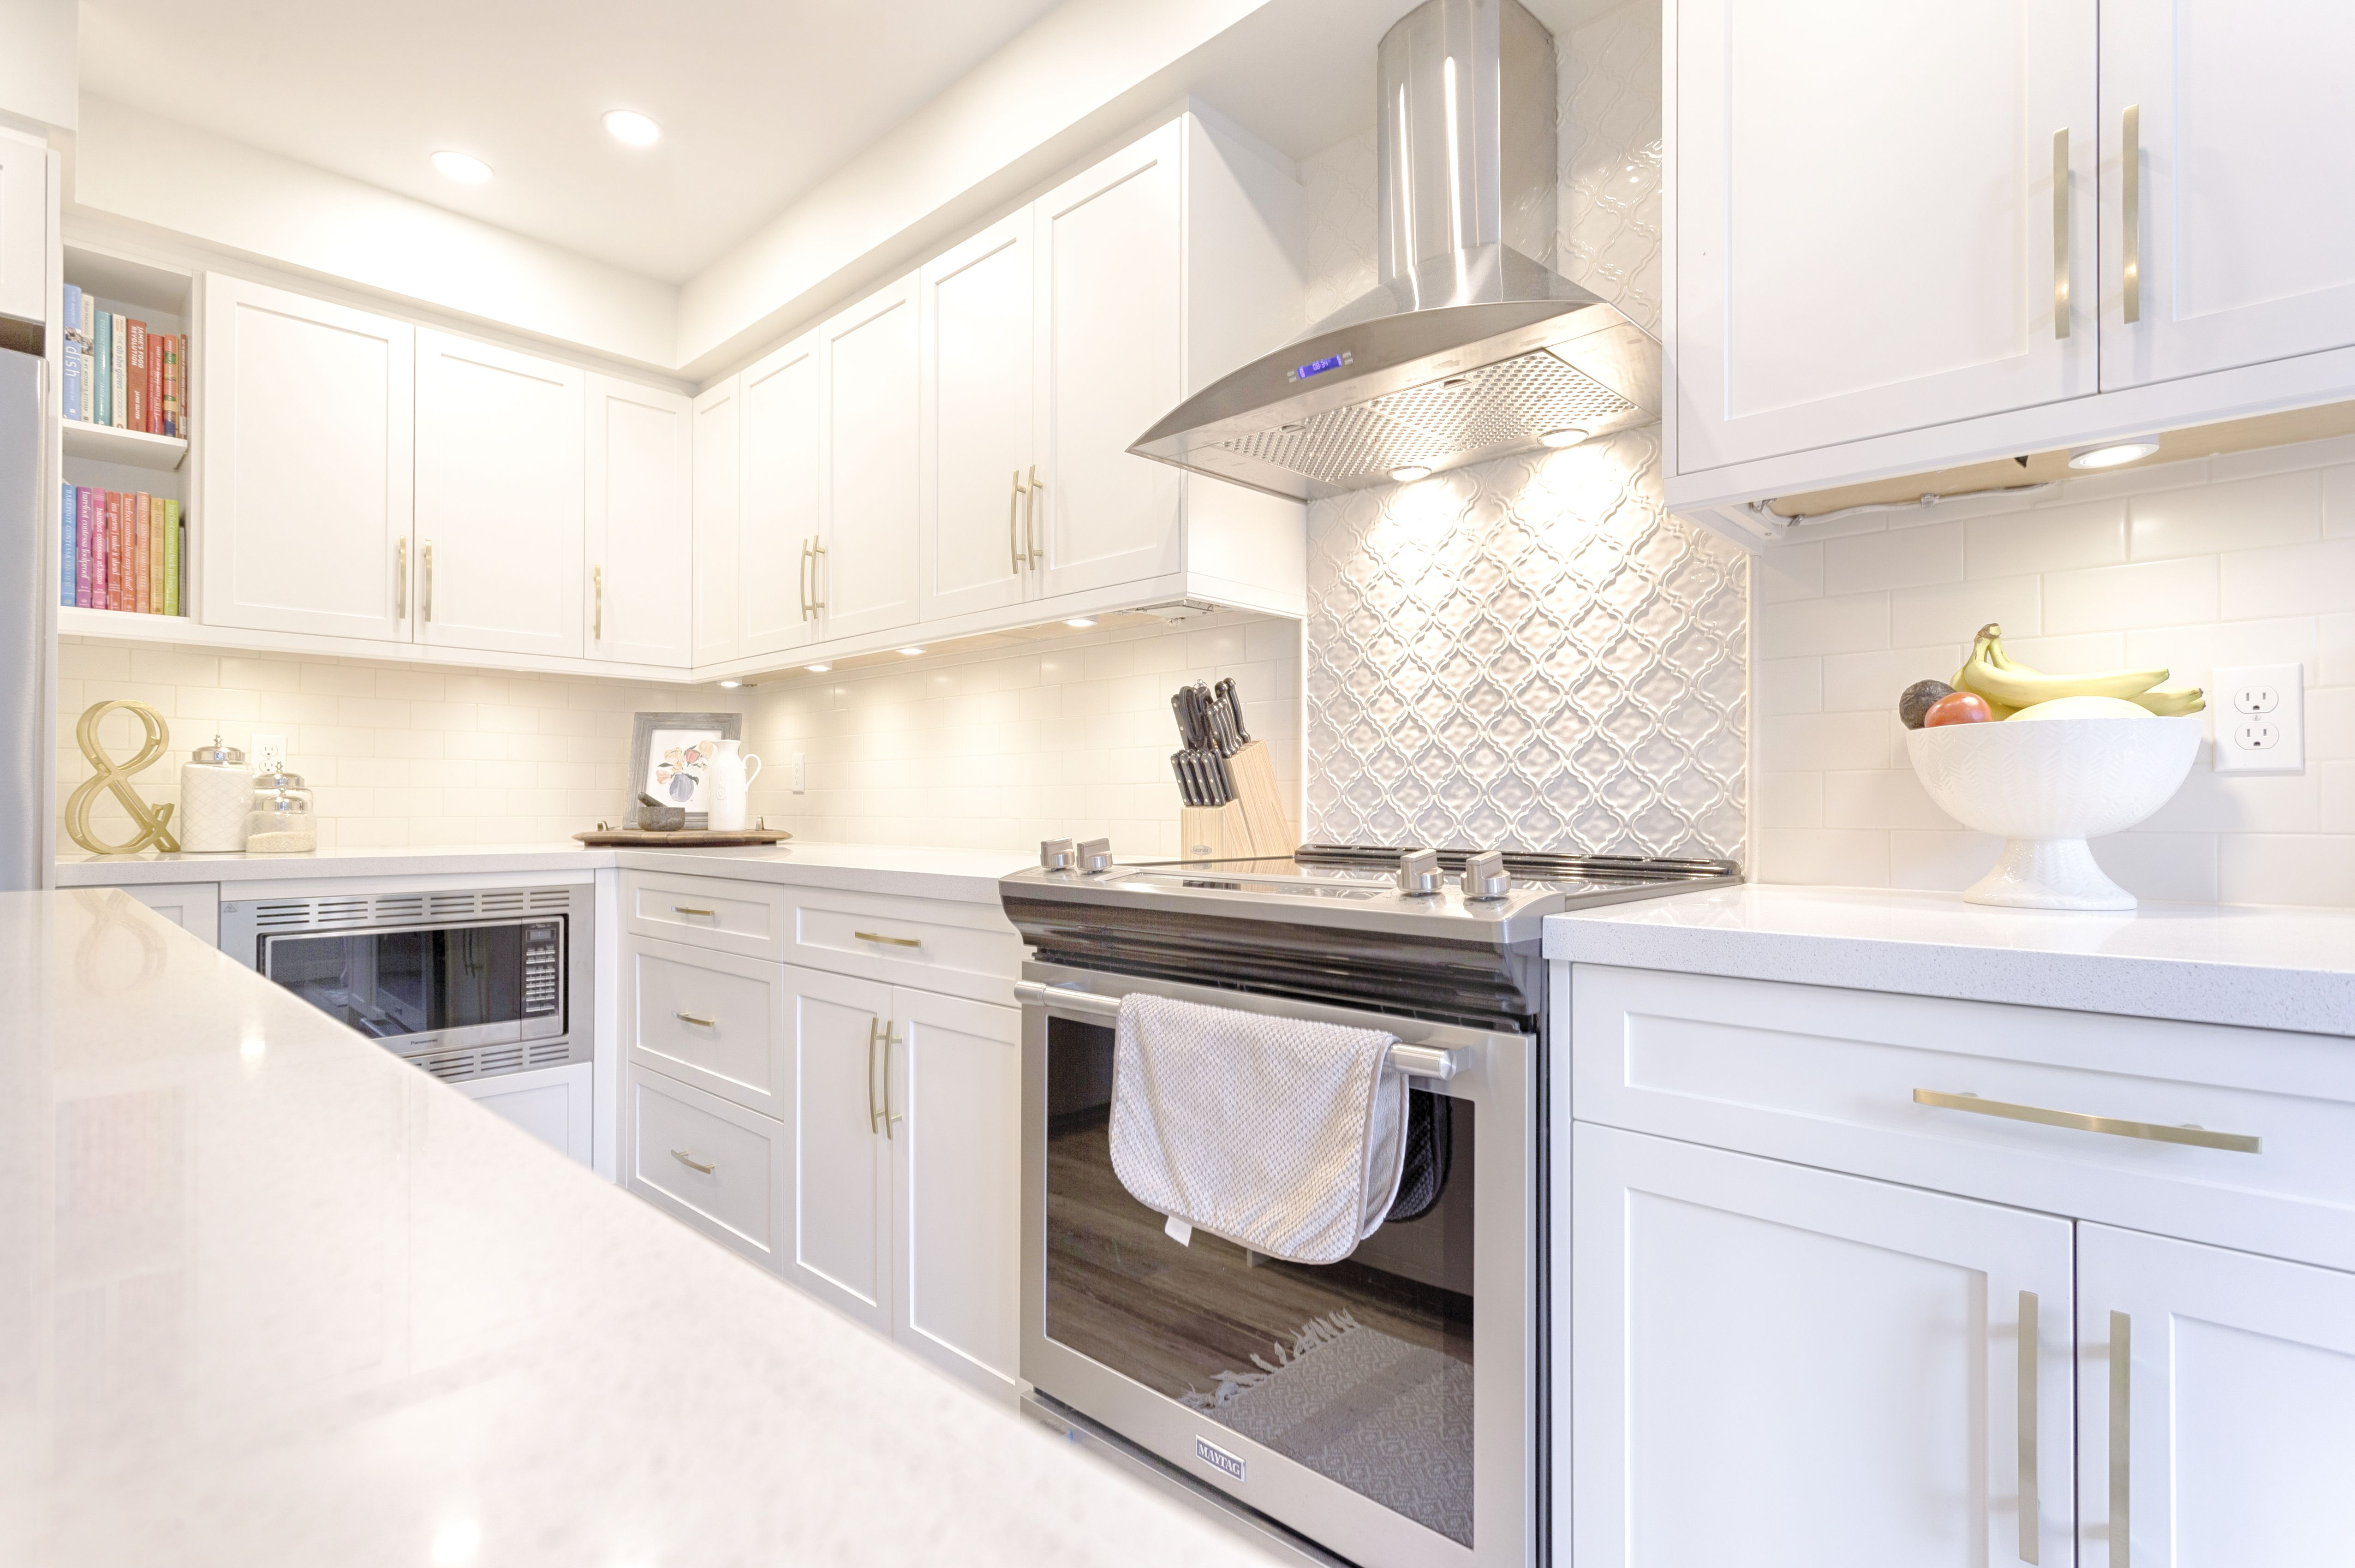 Do you like clean, timeless looks? Then this kitchen is ...